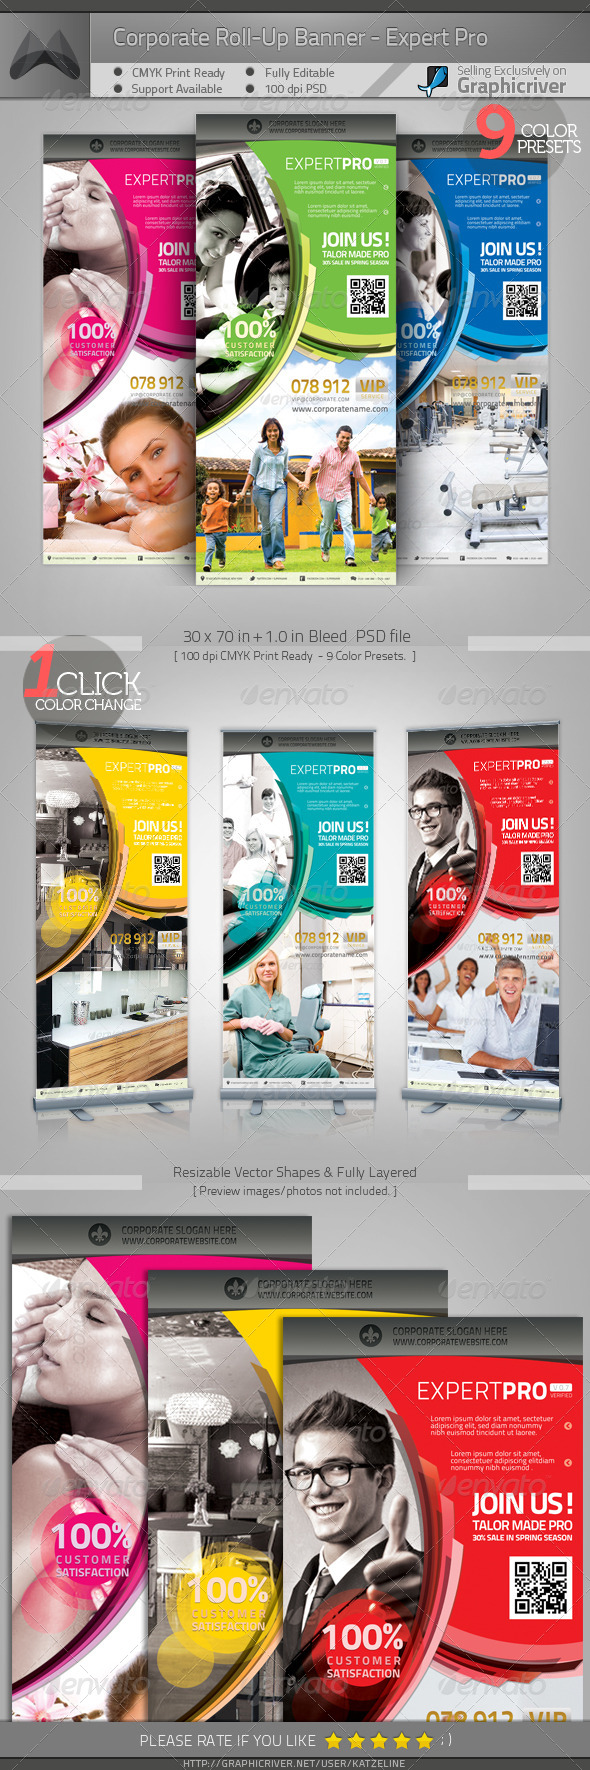 GraphicRiver Corporate Roll-up Banner Expert Pro 4178402